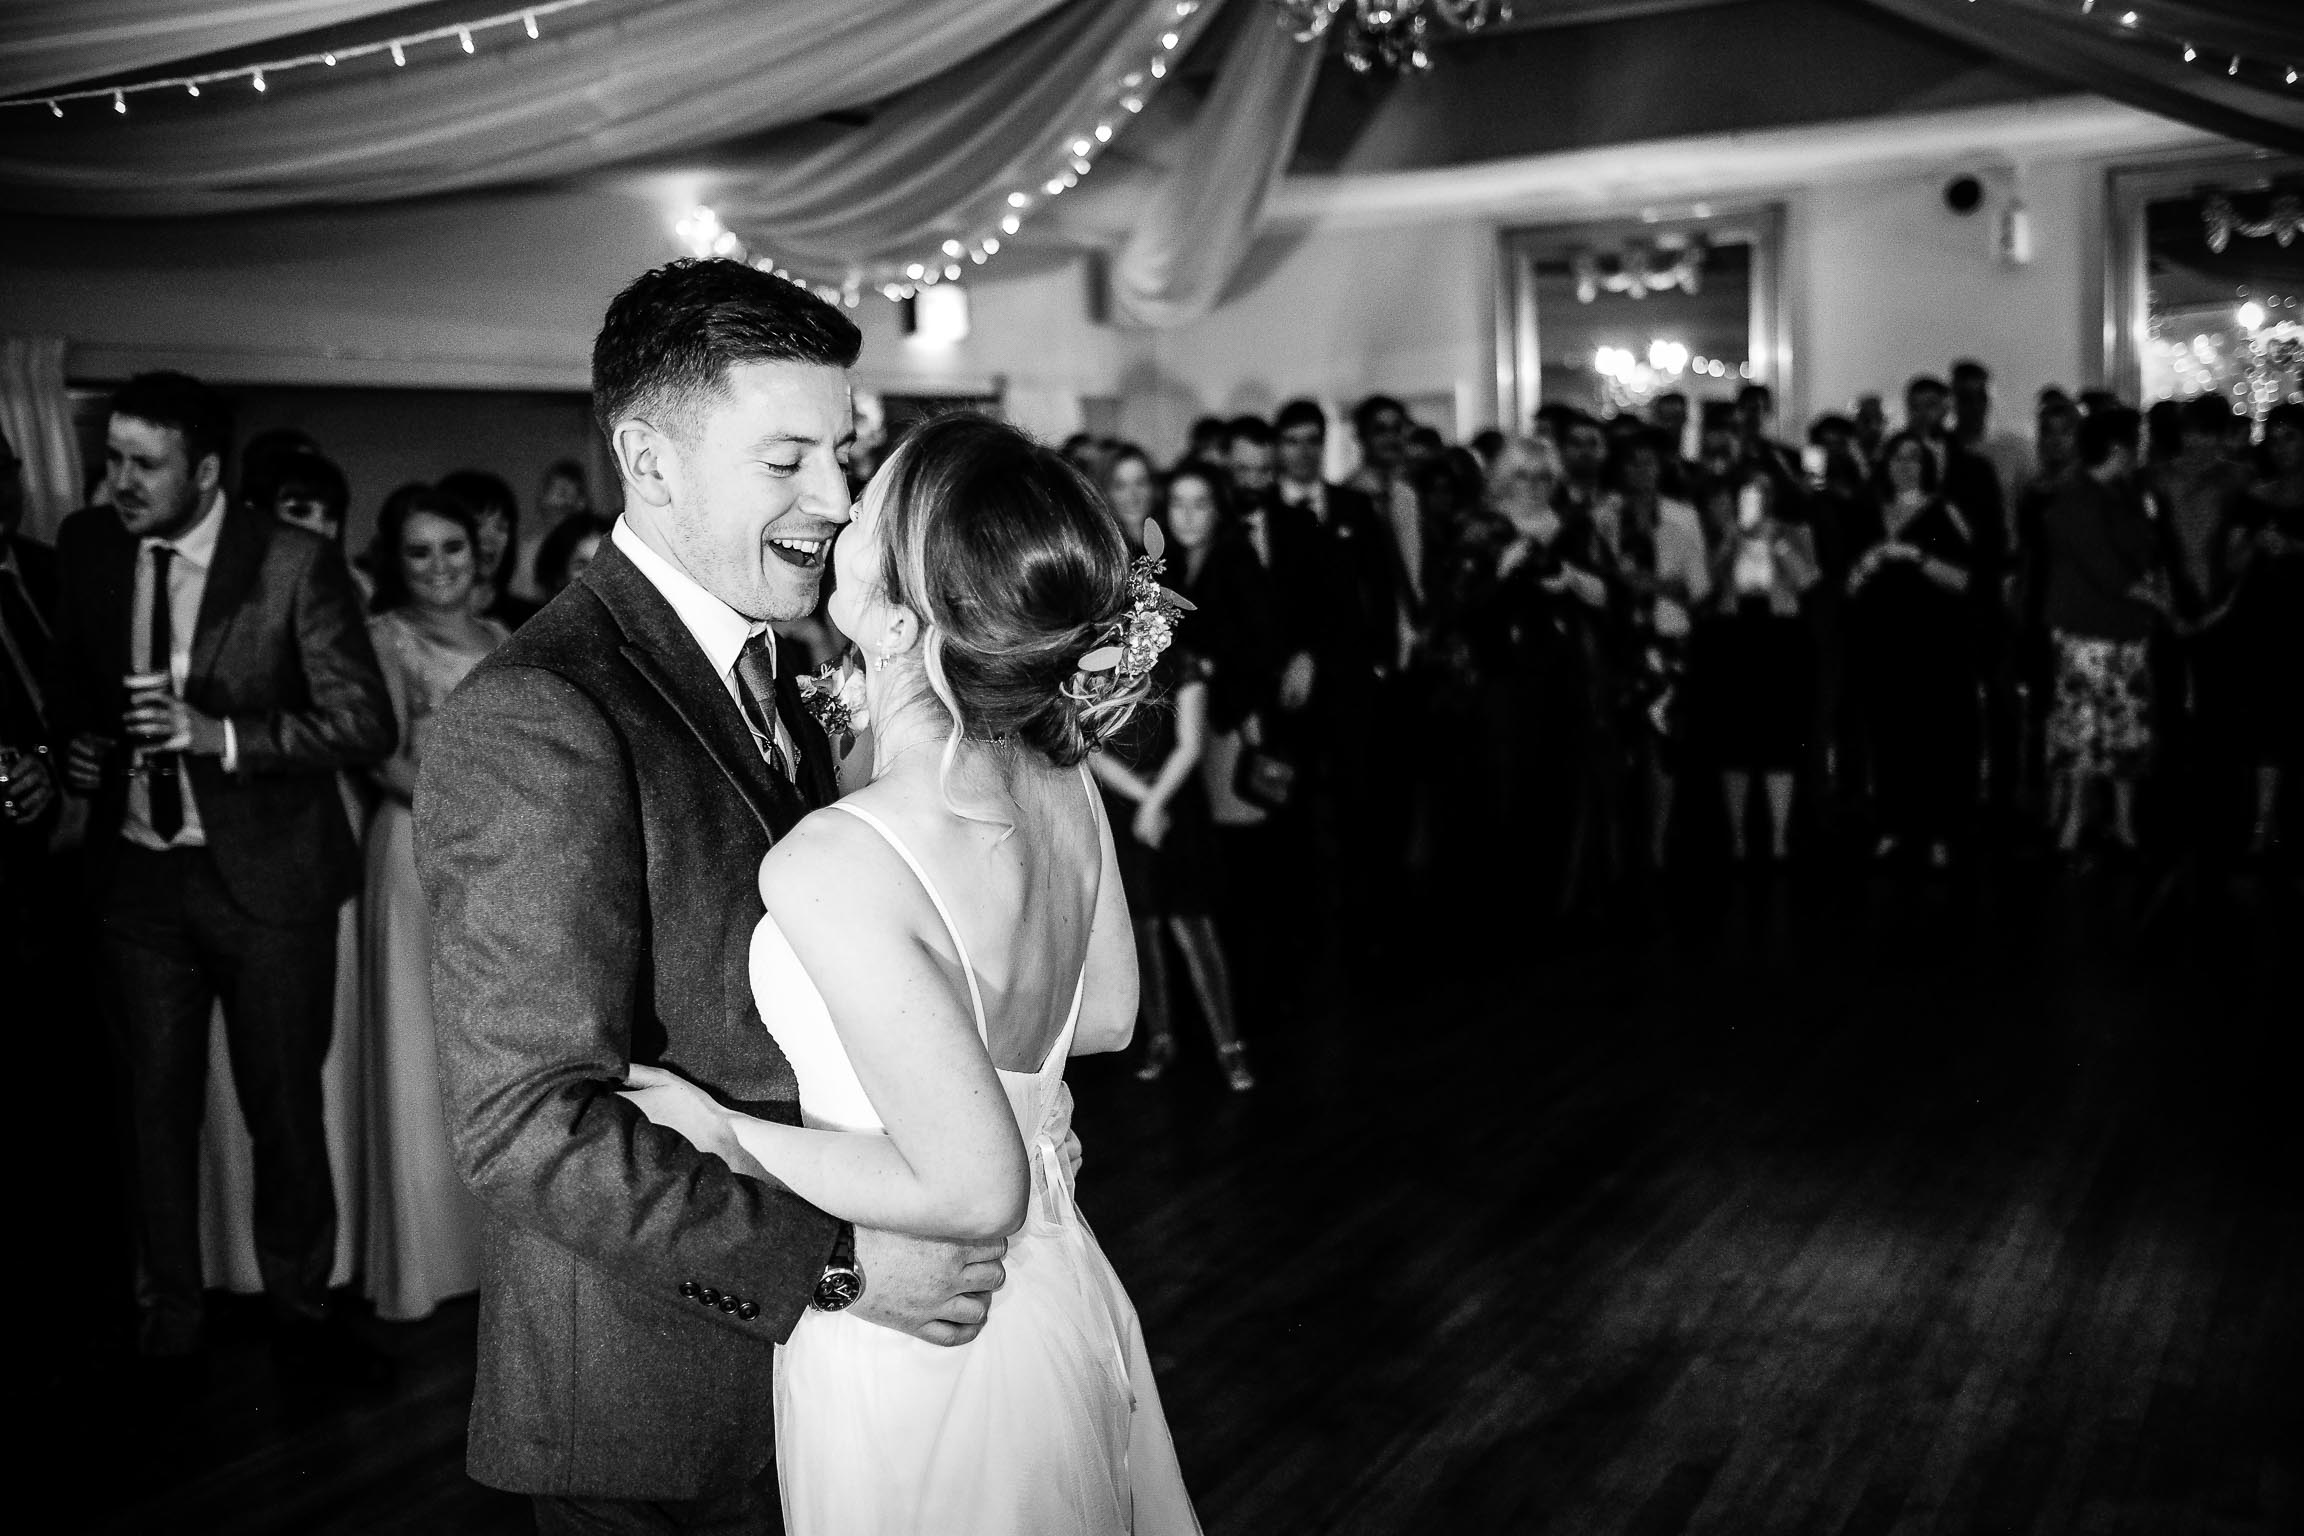 Stirk house clitheroe lancashire wedding photographer covering a documentary photography style  (71 of 85).jpg